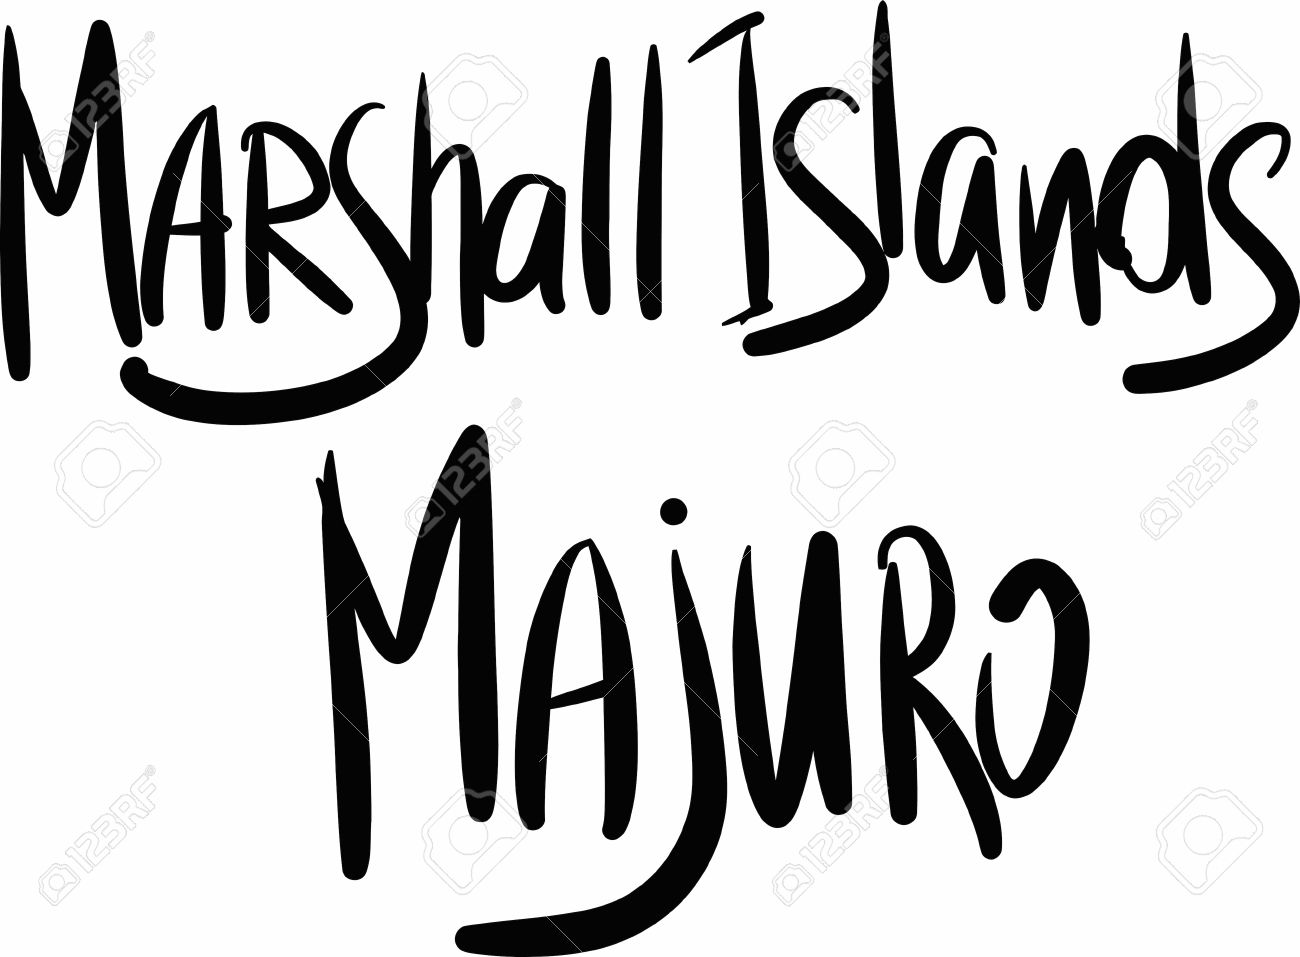 Marshall Islands Black And White Clipart